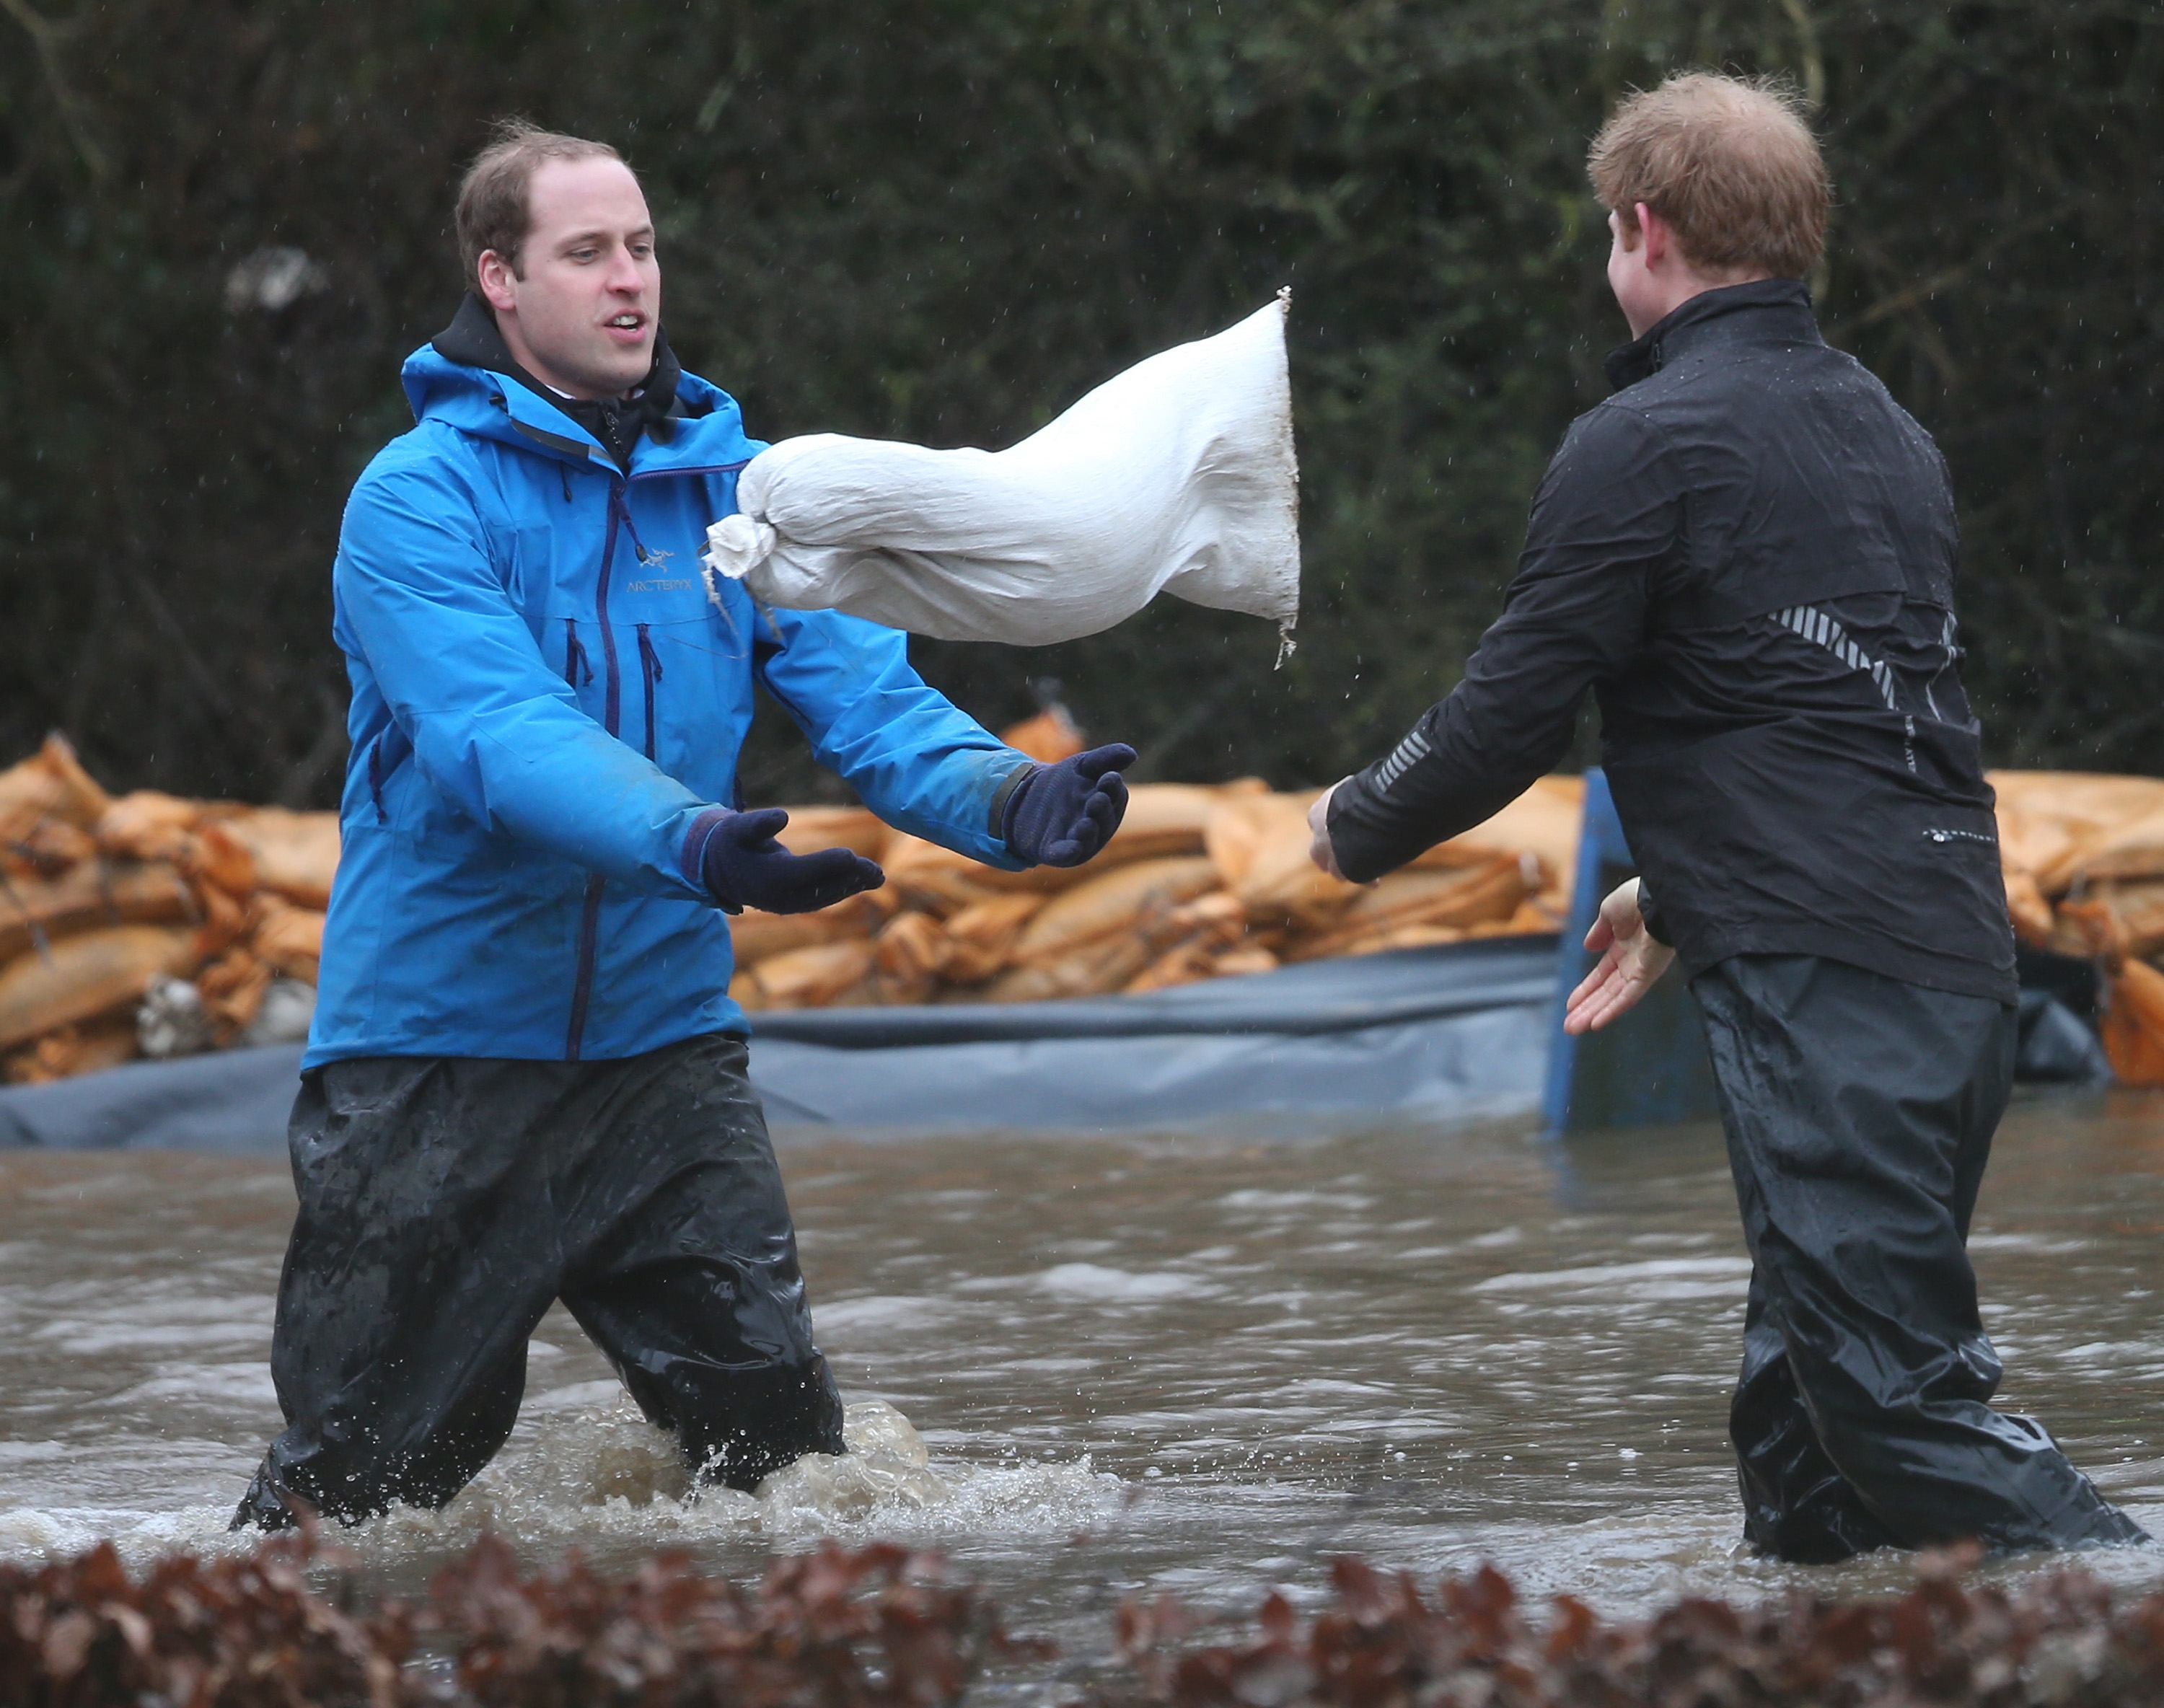 Prince William, Duke of Cambridge (L) catches a sandbag thrown by his brother Prince Harry as they build a flood wall